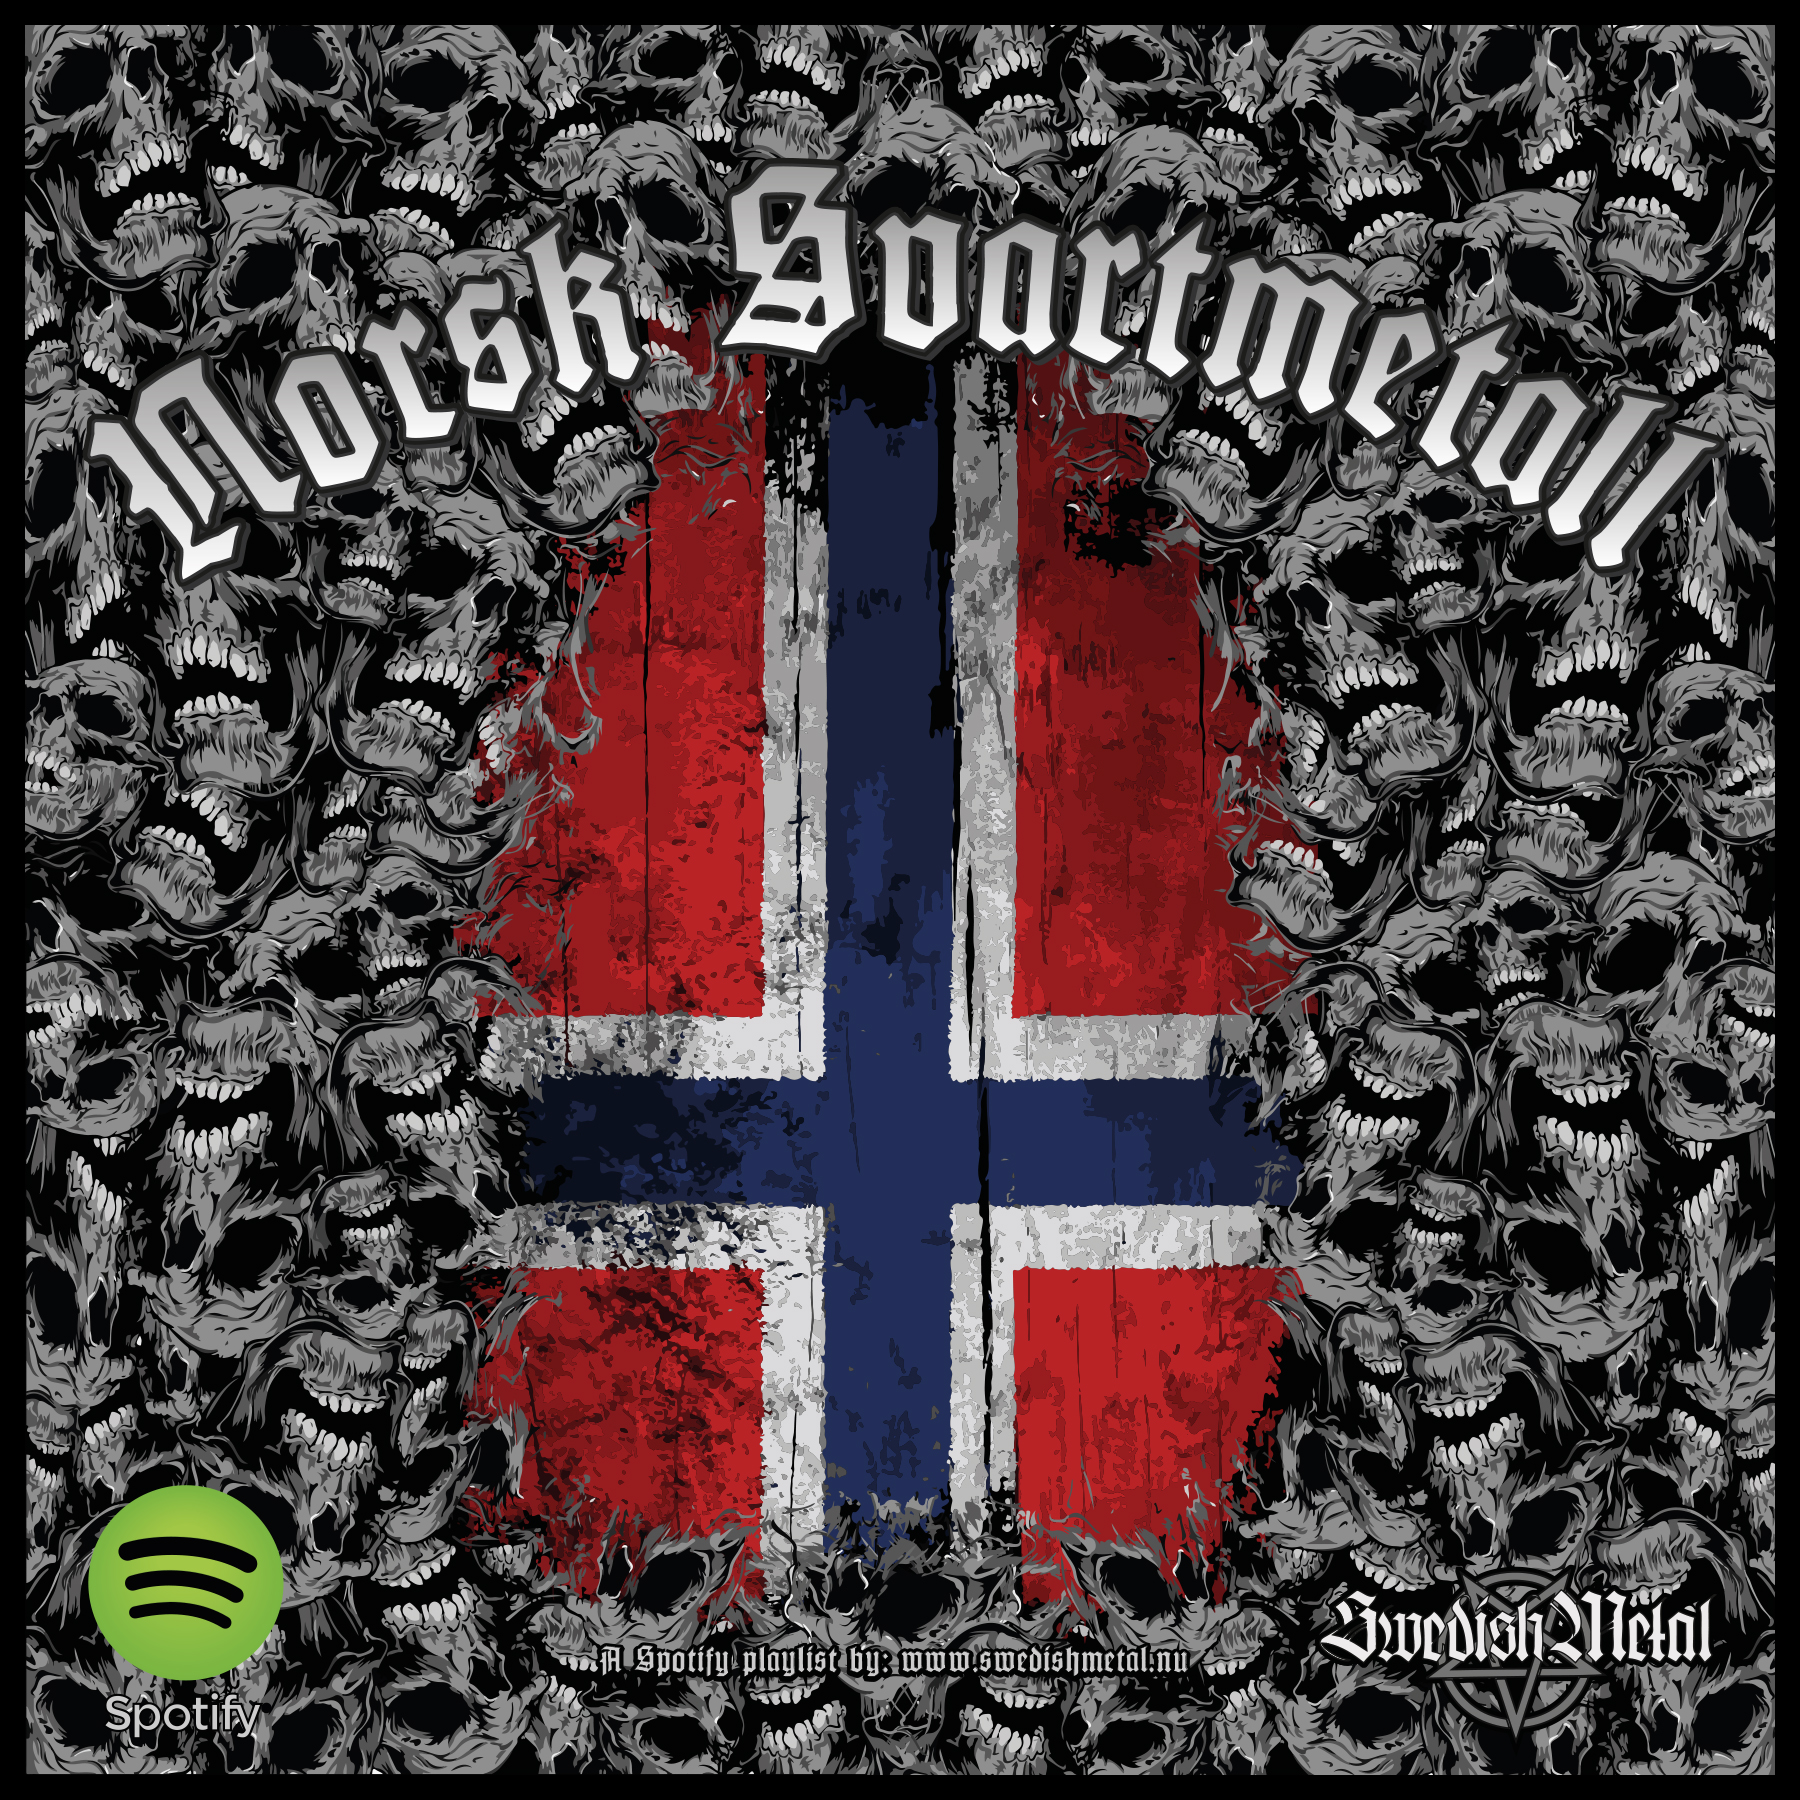 NORSK SVARTMETALL – Spotify playlist – Swedish Metal – The